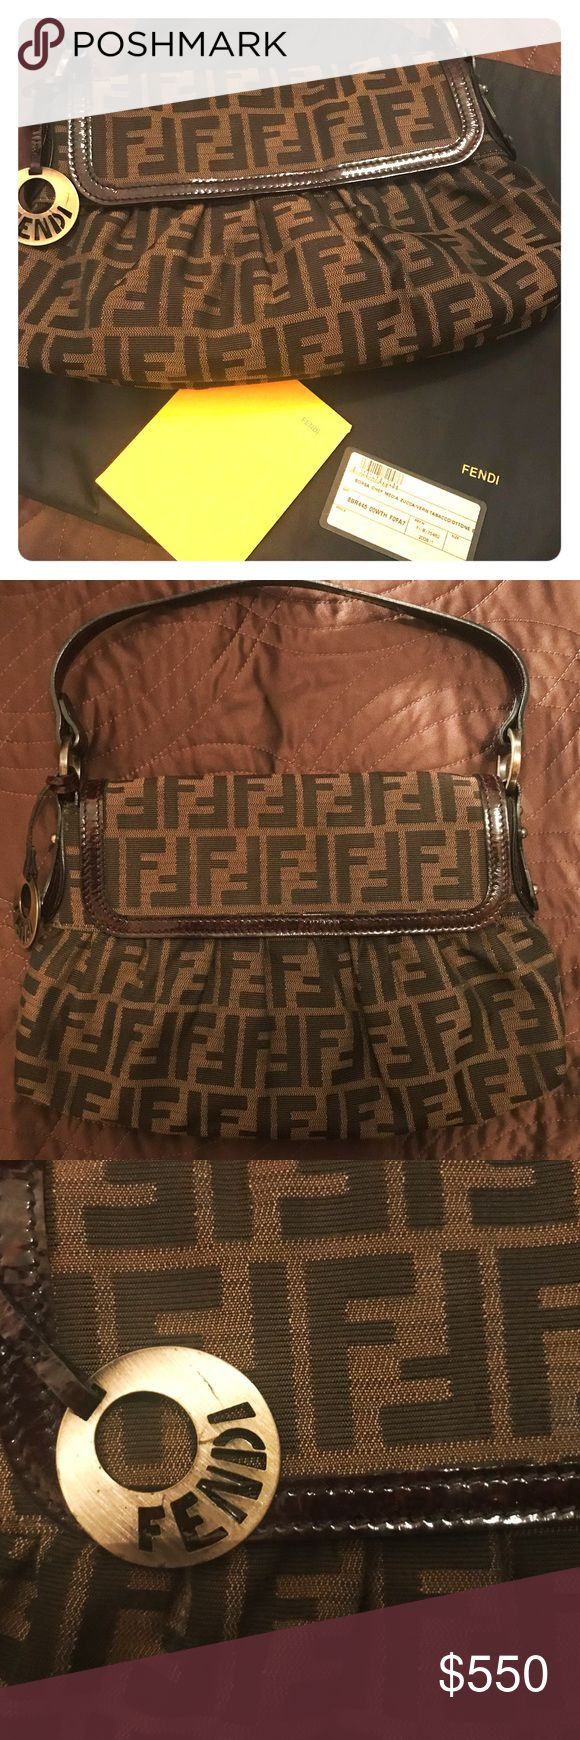 Authentic Fendi Zucca Shoulder handbag Beautiful Authentic Fendi Zucca shoulder bag. Gently Used and well taken care of. I keep my handbags in their dust bags and in a proper storage place. Comes with papers shown/ authenticity card and dust bag. Comes from a smoke free home. You will not be disappointed. Looks new!! Original price was 799.99 No markings inside or out. Offers accepted Fendi Bags Shoulder Bags